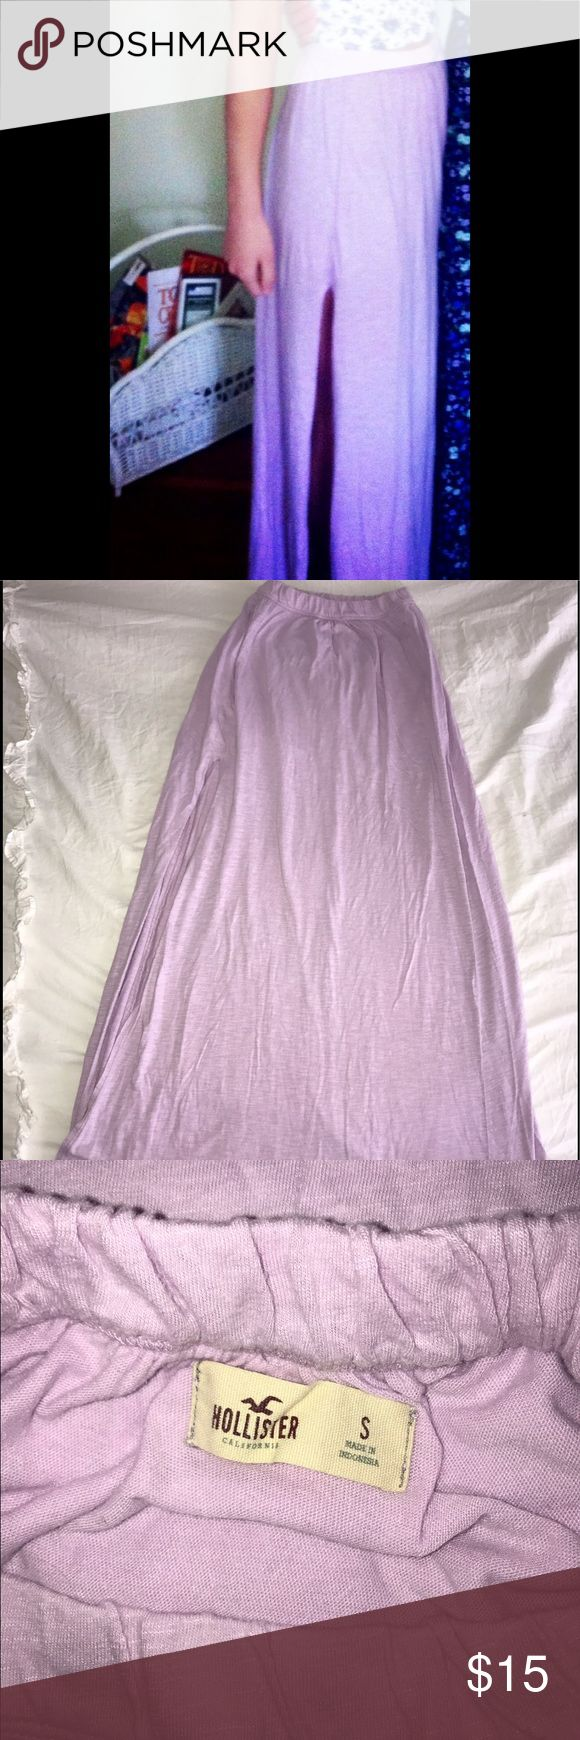 Hollister Maxi skirt adorable hollister light purple maxi skirt, with slit on the side, worn once Hollister Skirts Maxi